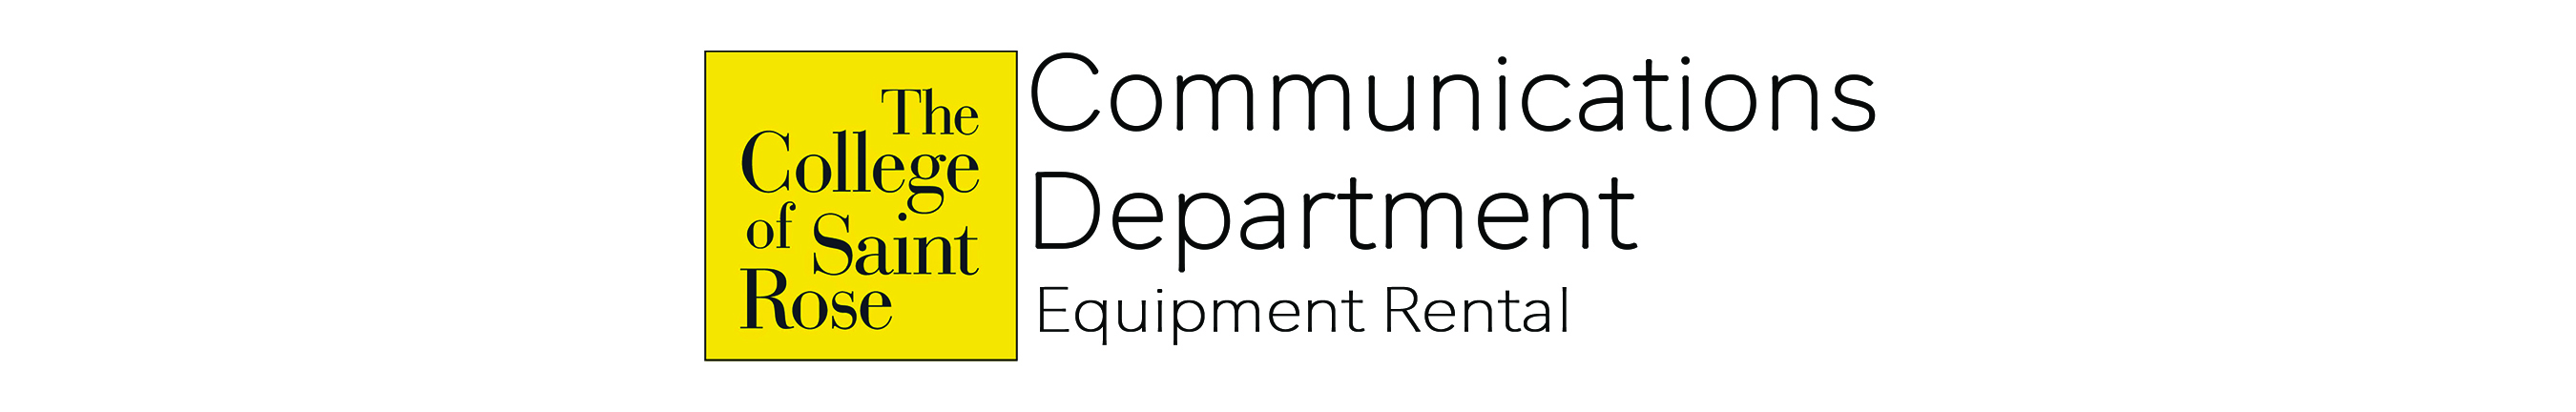 Communications Department